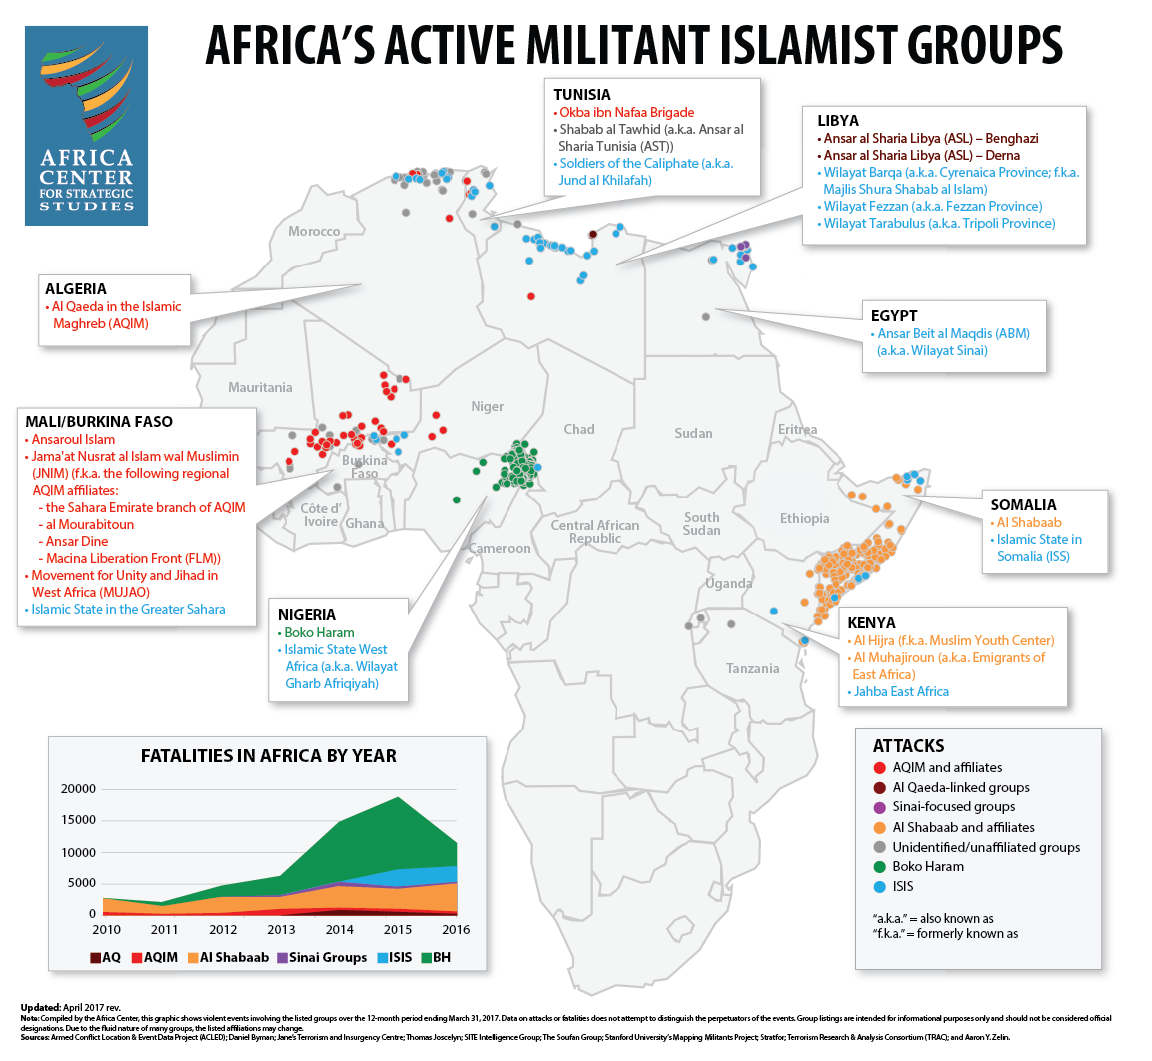 Africa's Active Militant Islamic Groups as of Apr 2017